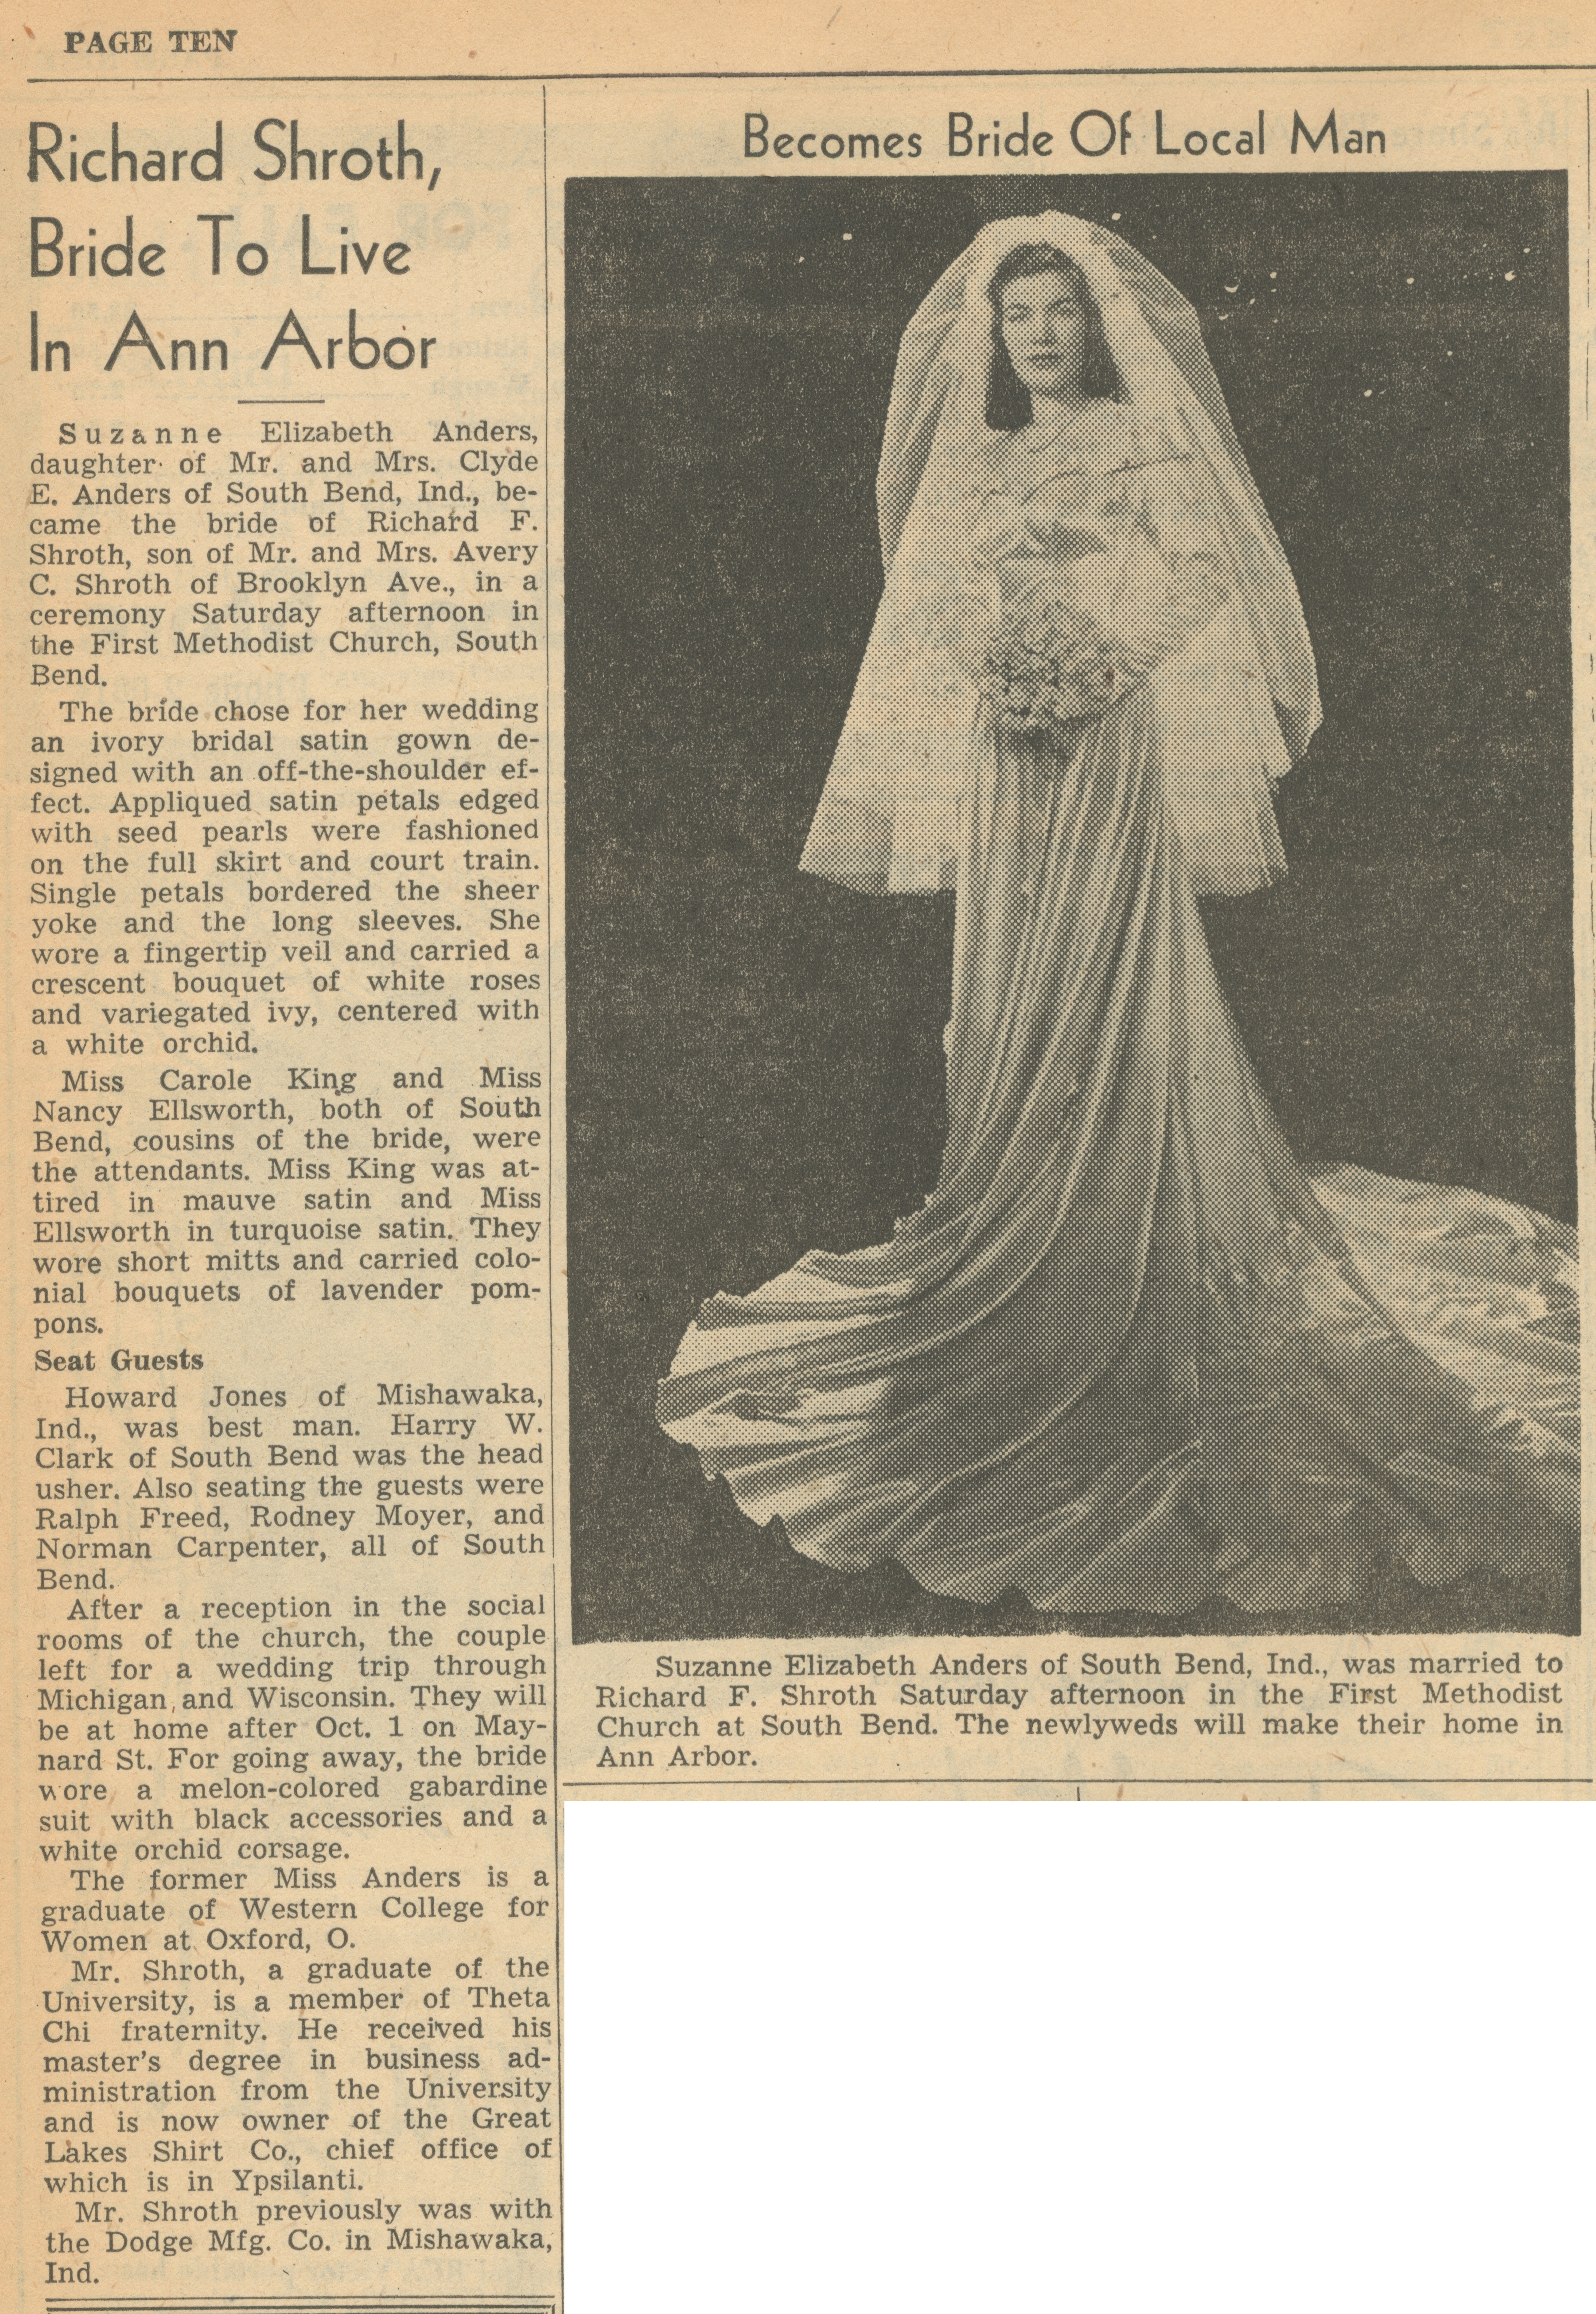 Richard Shroth, Bride To Live In Ann Arbor image